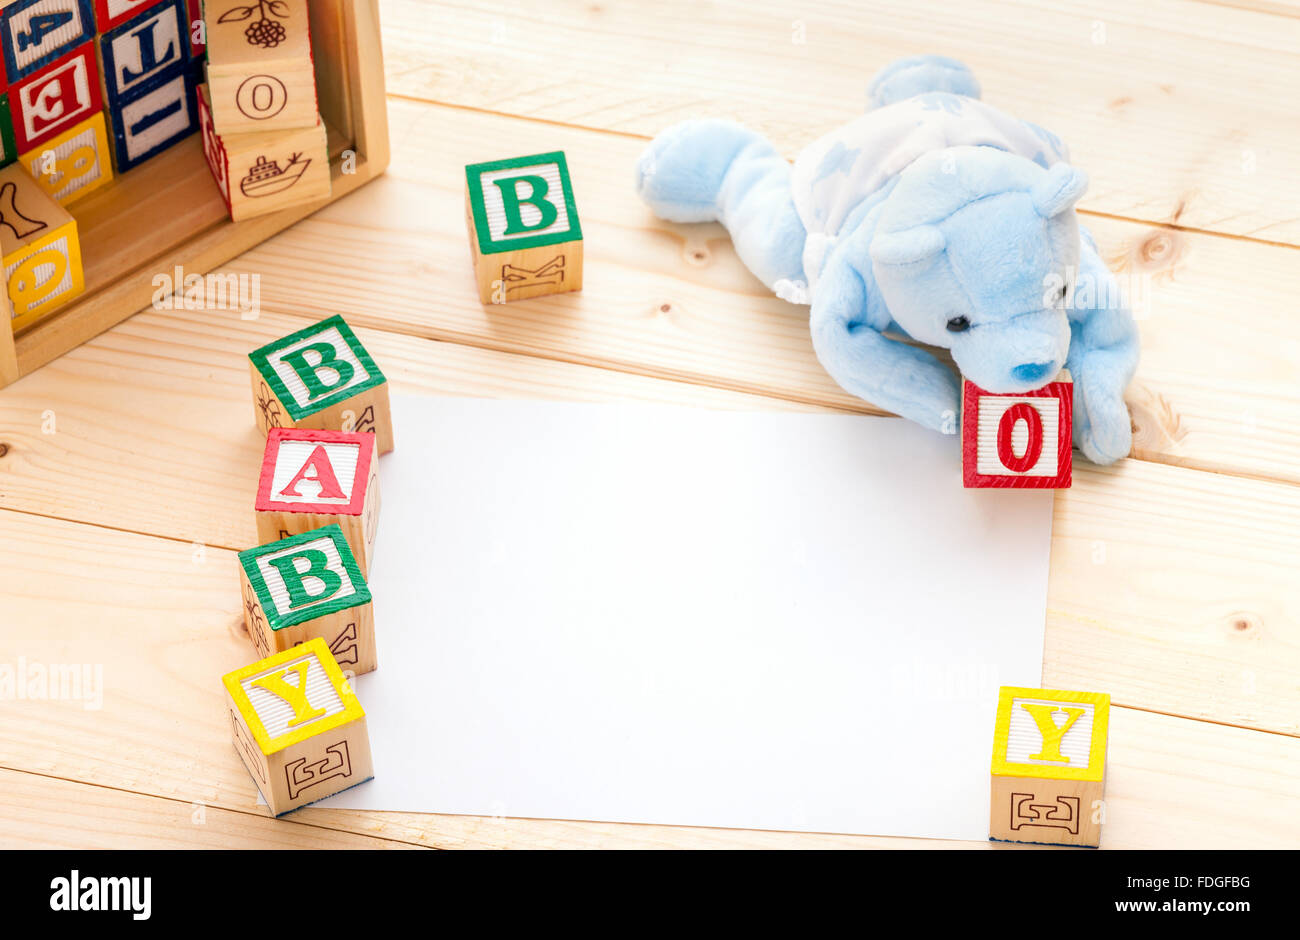 baby announcement invitation a blue toy bear spelling the words baby boy with wooden toy blocks on pine wood floor background